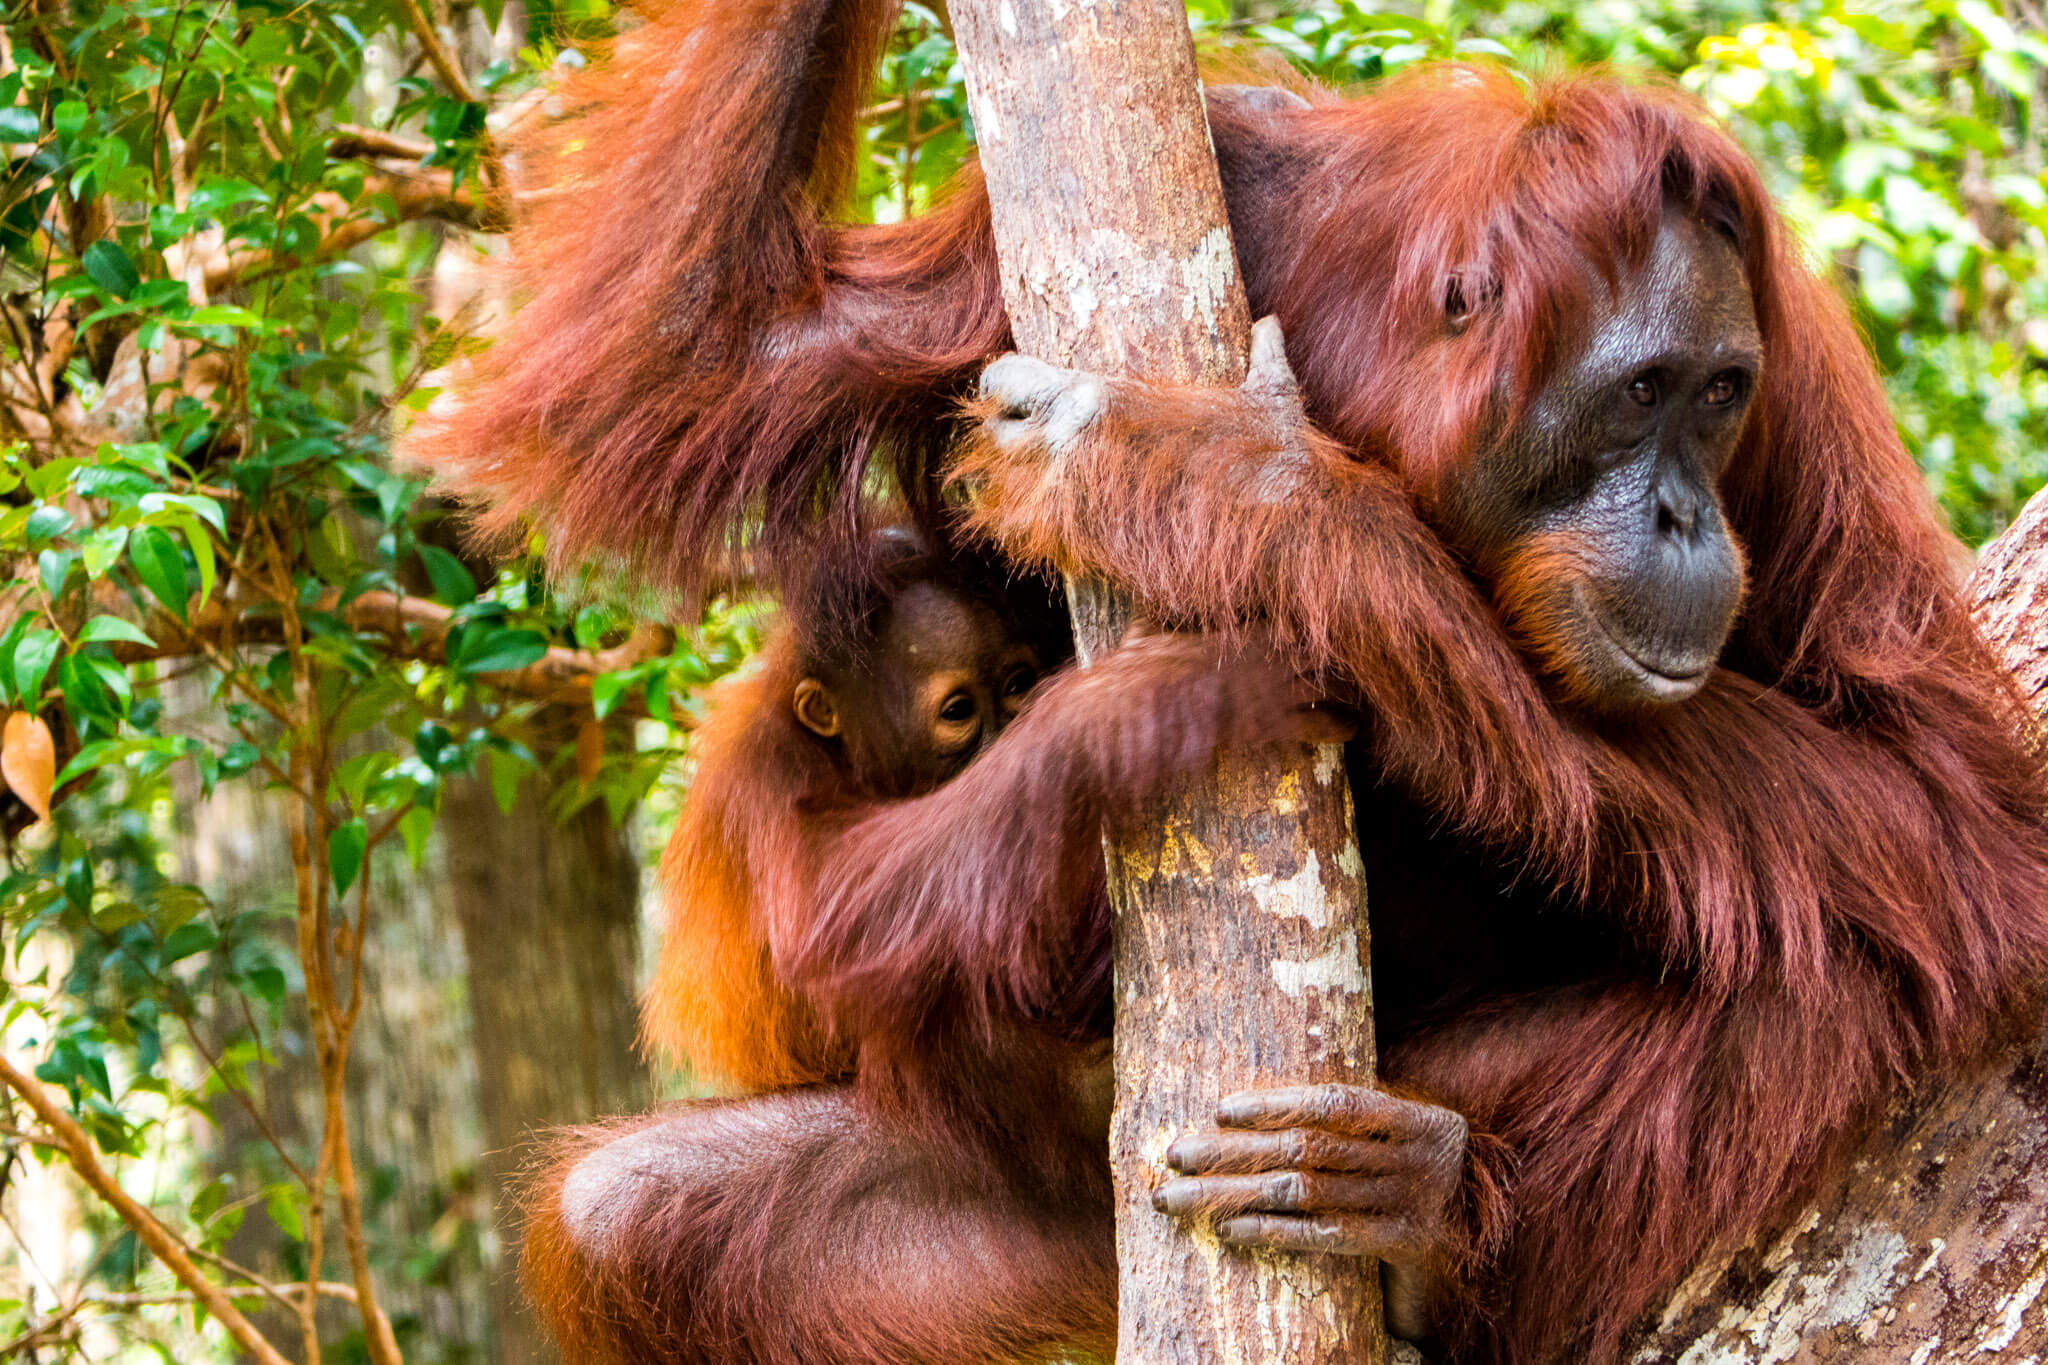 Mother and baby Orangutan in Tanjung Puting, Borneo